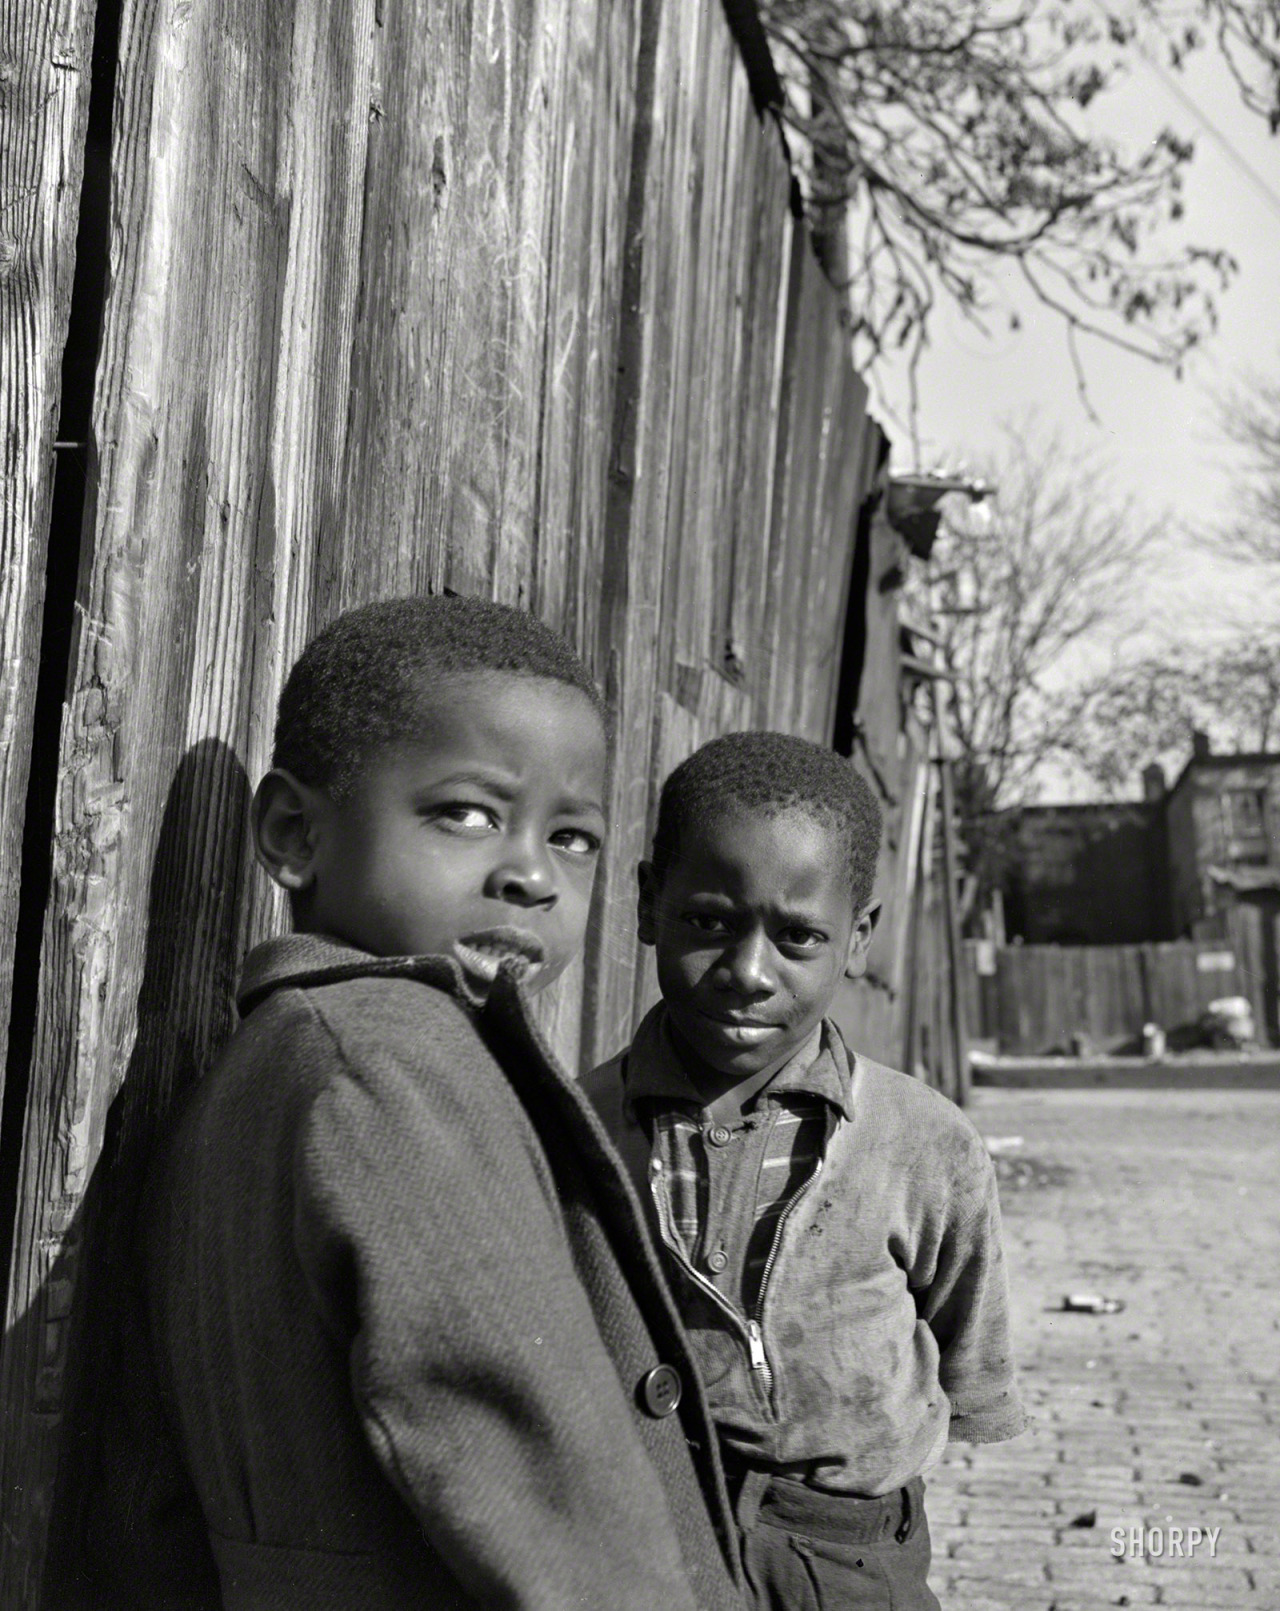 k-a-t-i-e-:  Washington, D.C., November 1942 Gordon Parks